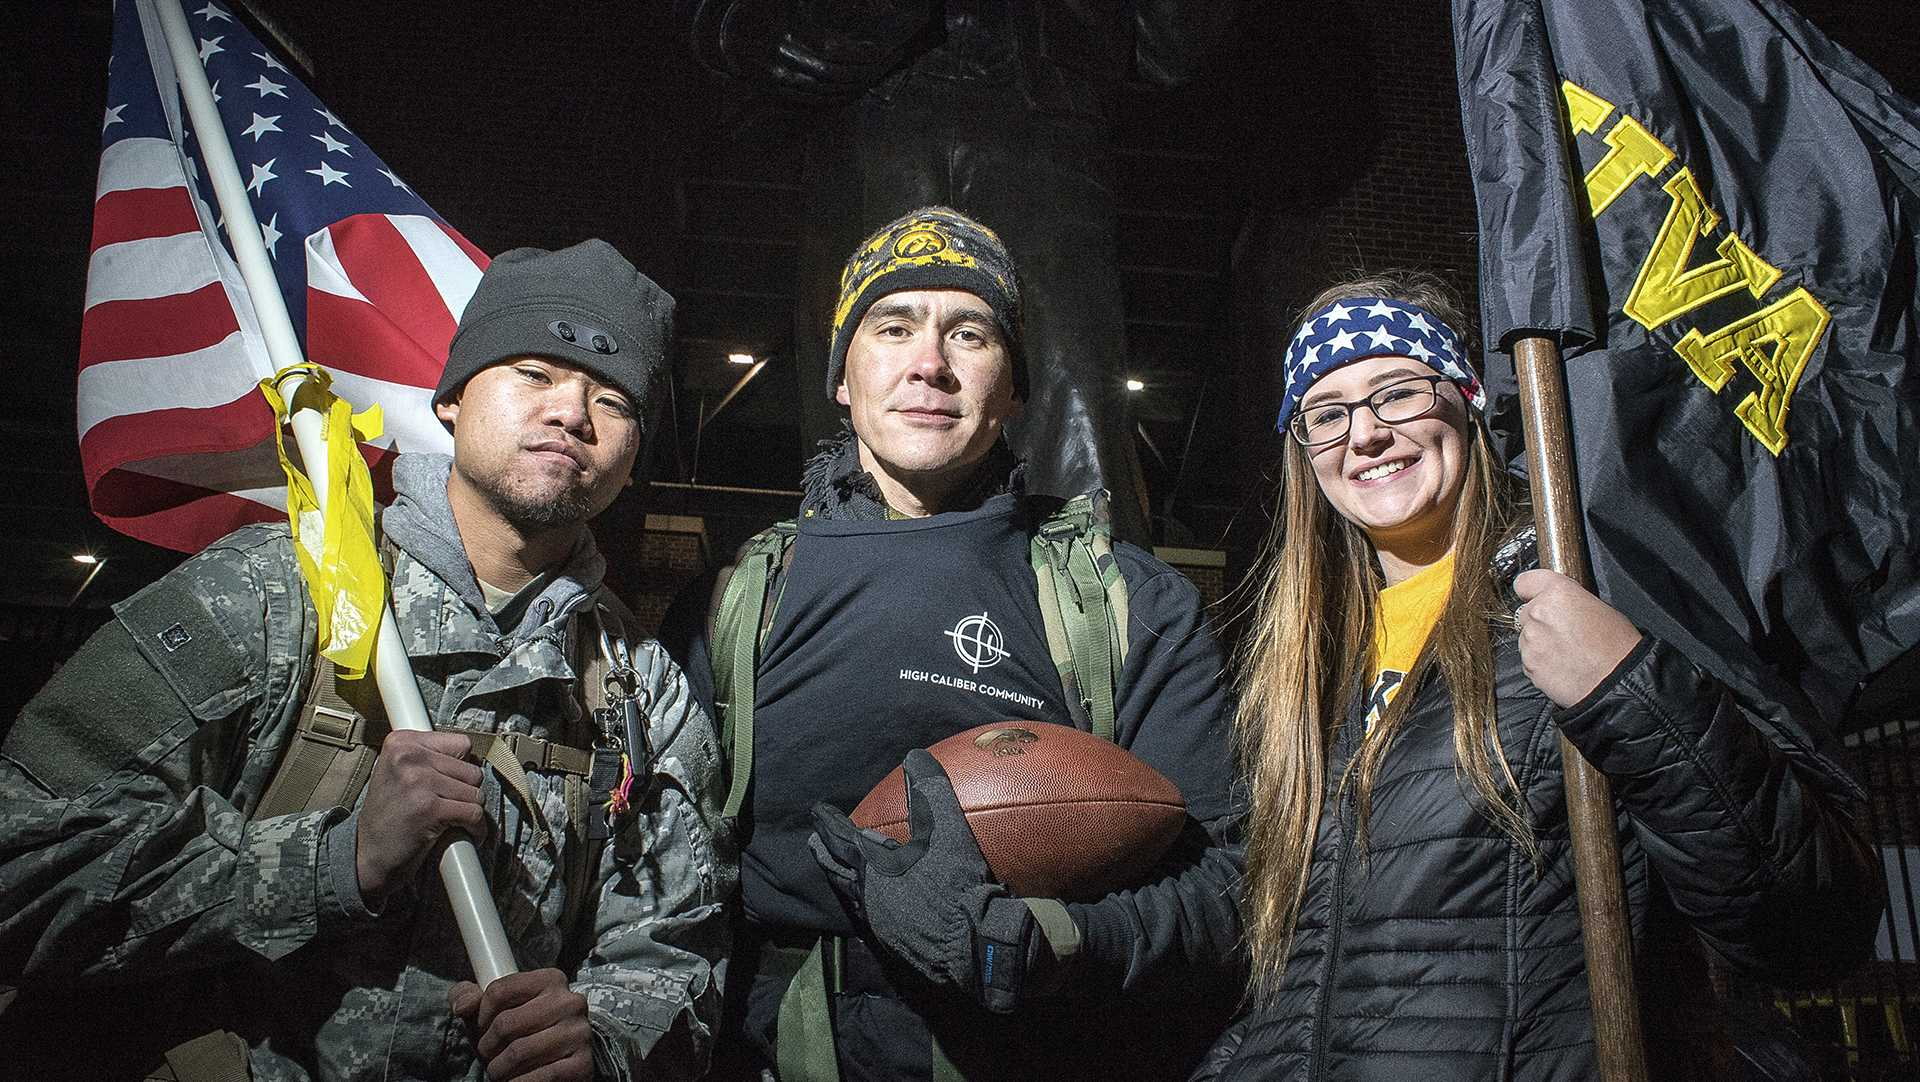 Veterans kick off ruck march for suicide awareness at Kinnick